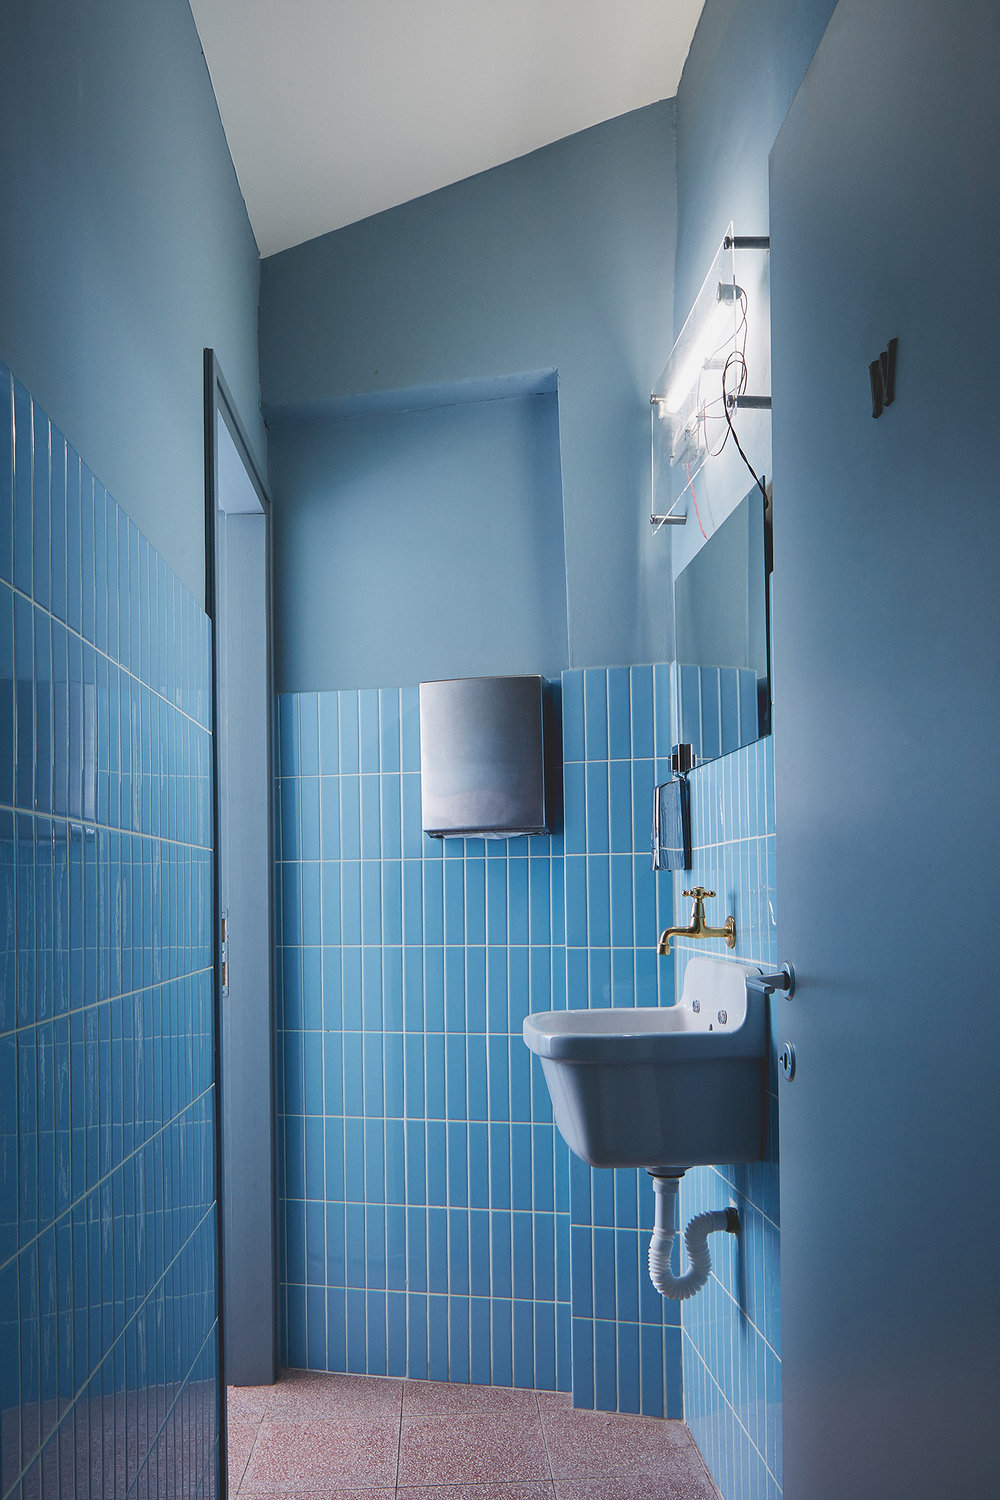 restaurants toilets with red terrazzo floor and light blue tiles